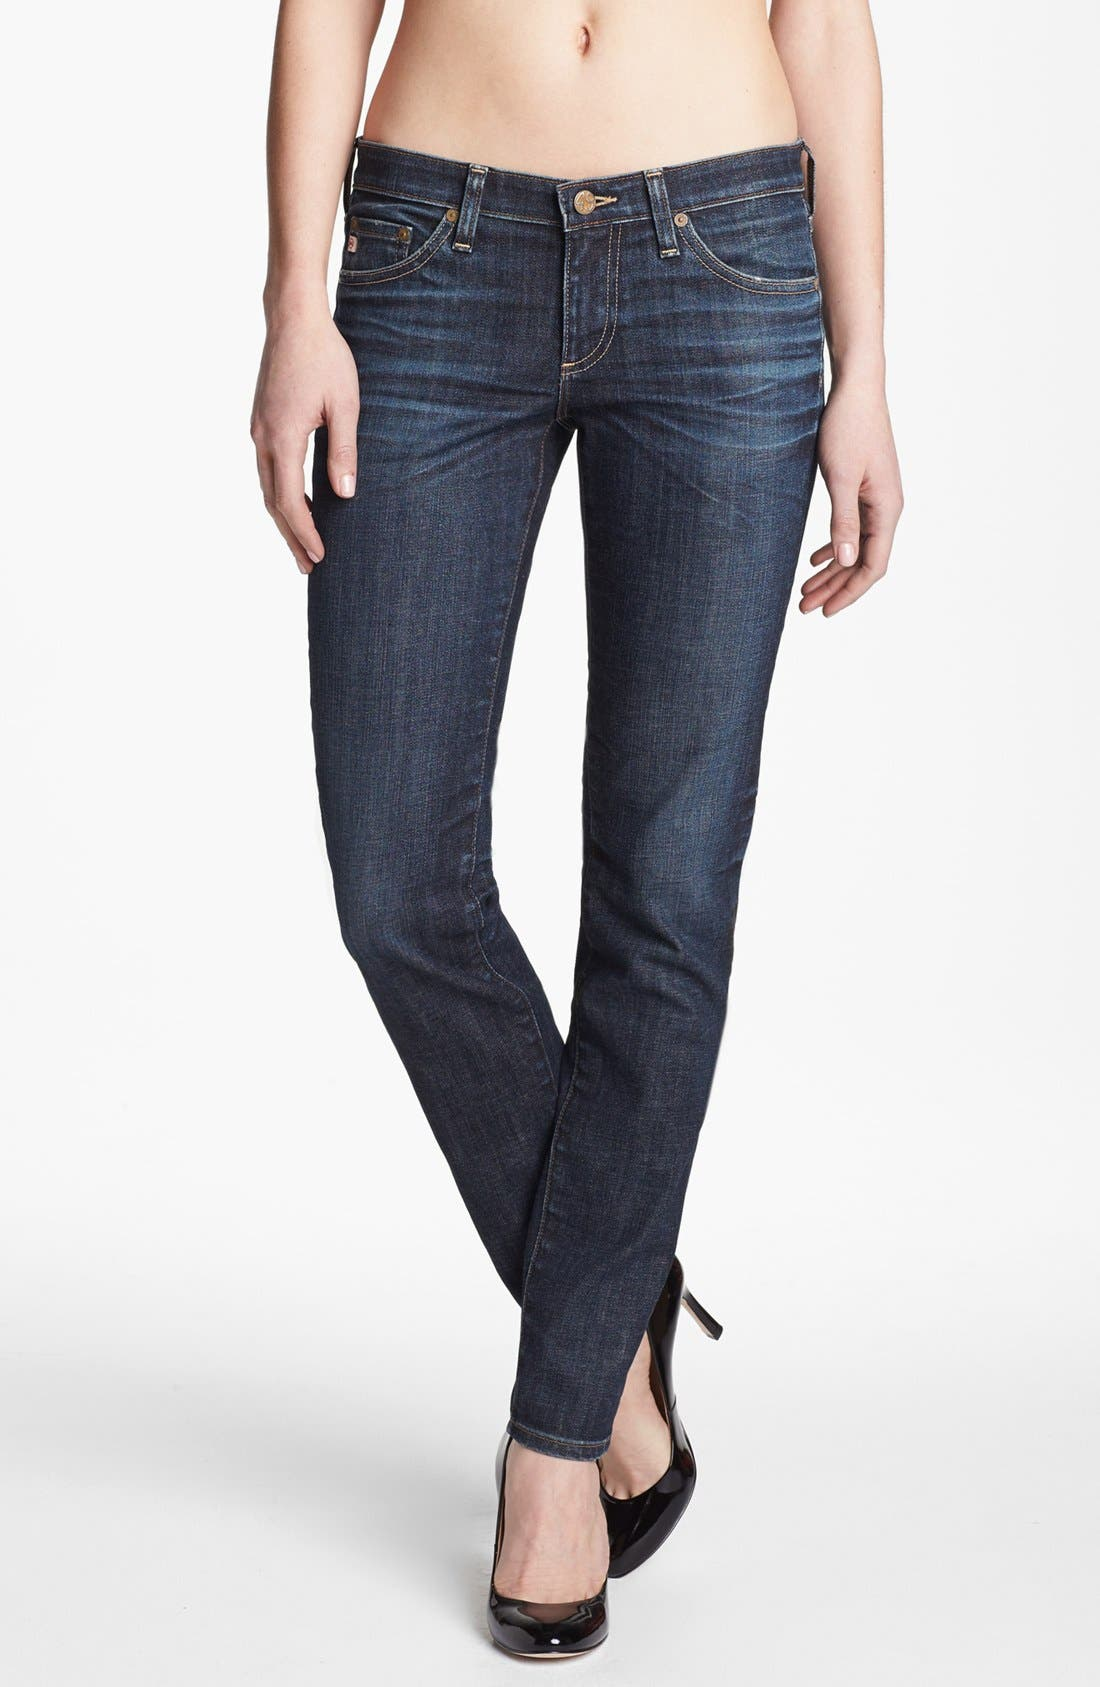 Main Image - AG 'The Stilt' Cigarette Leg Stretch Jeans (4 Year Coastline)